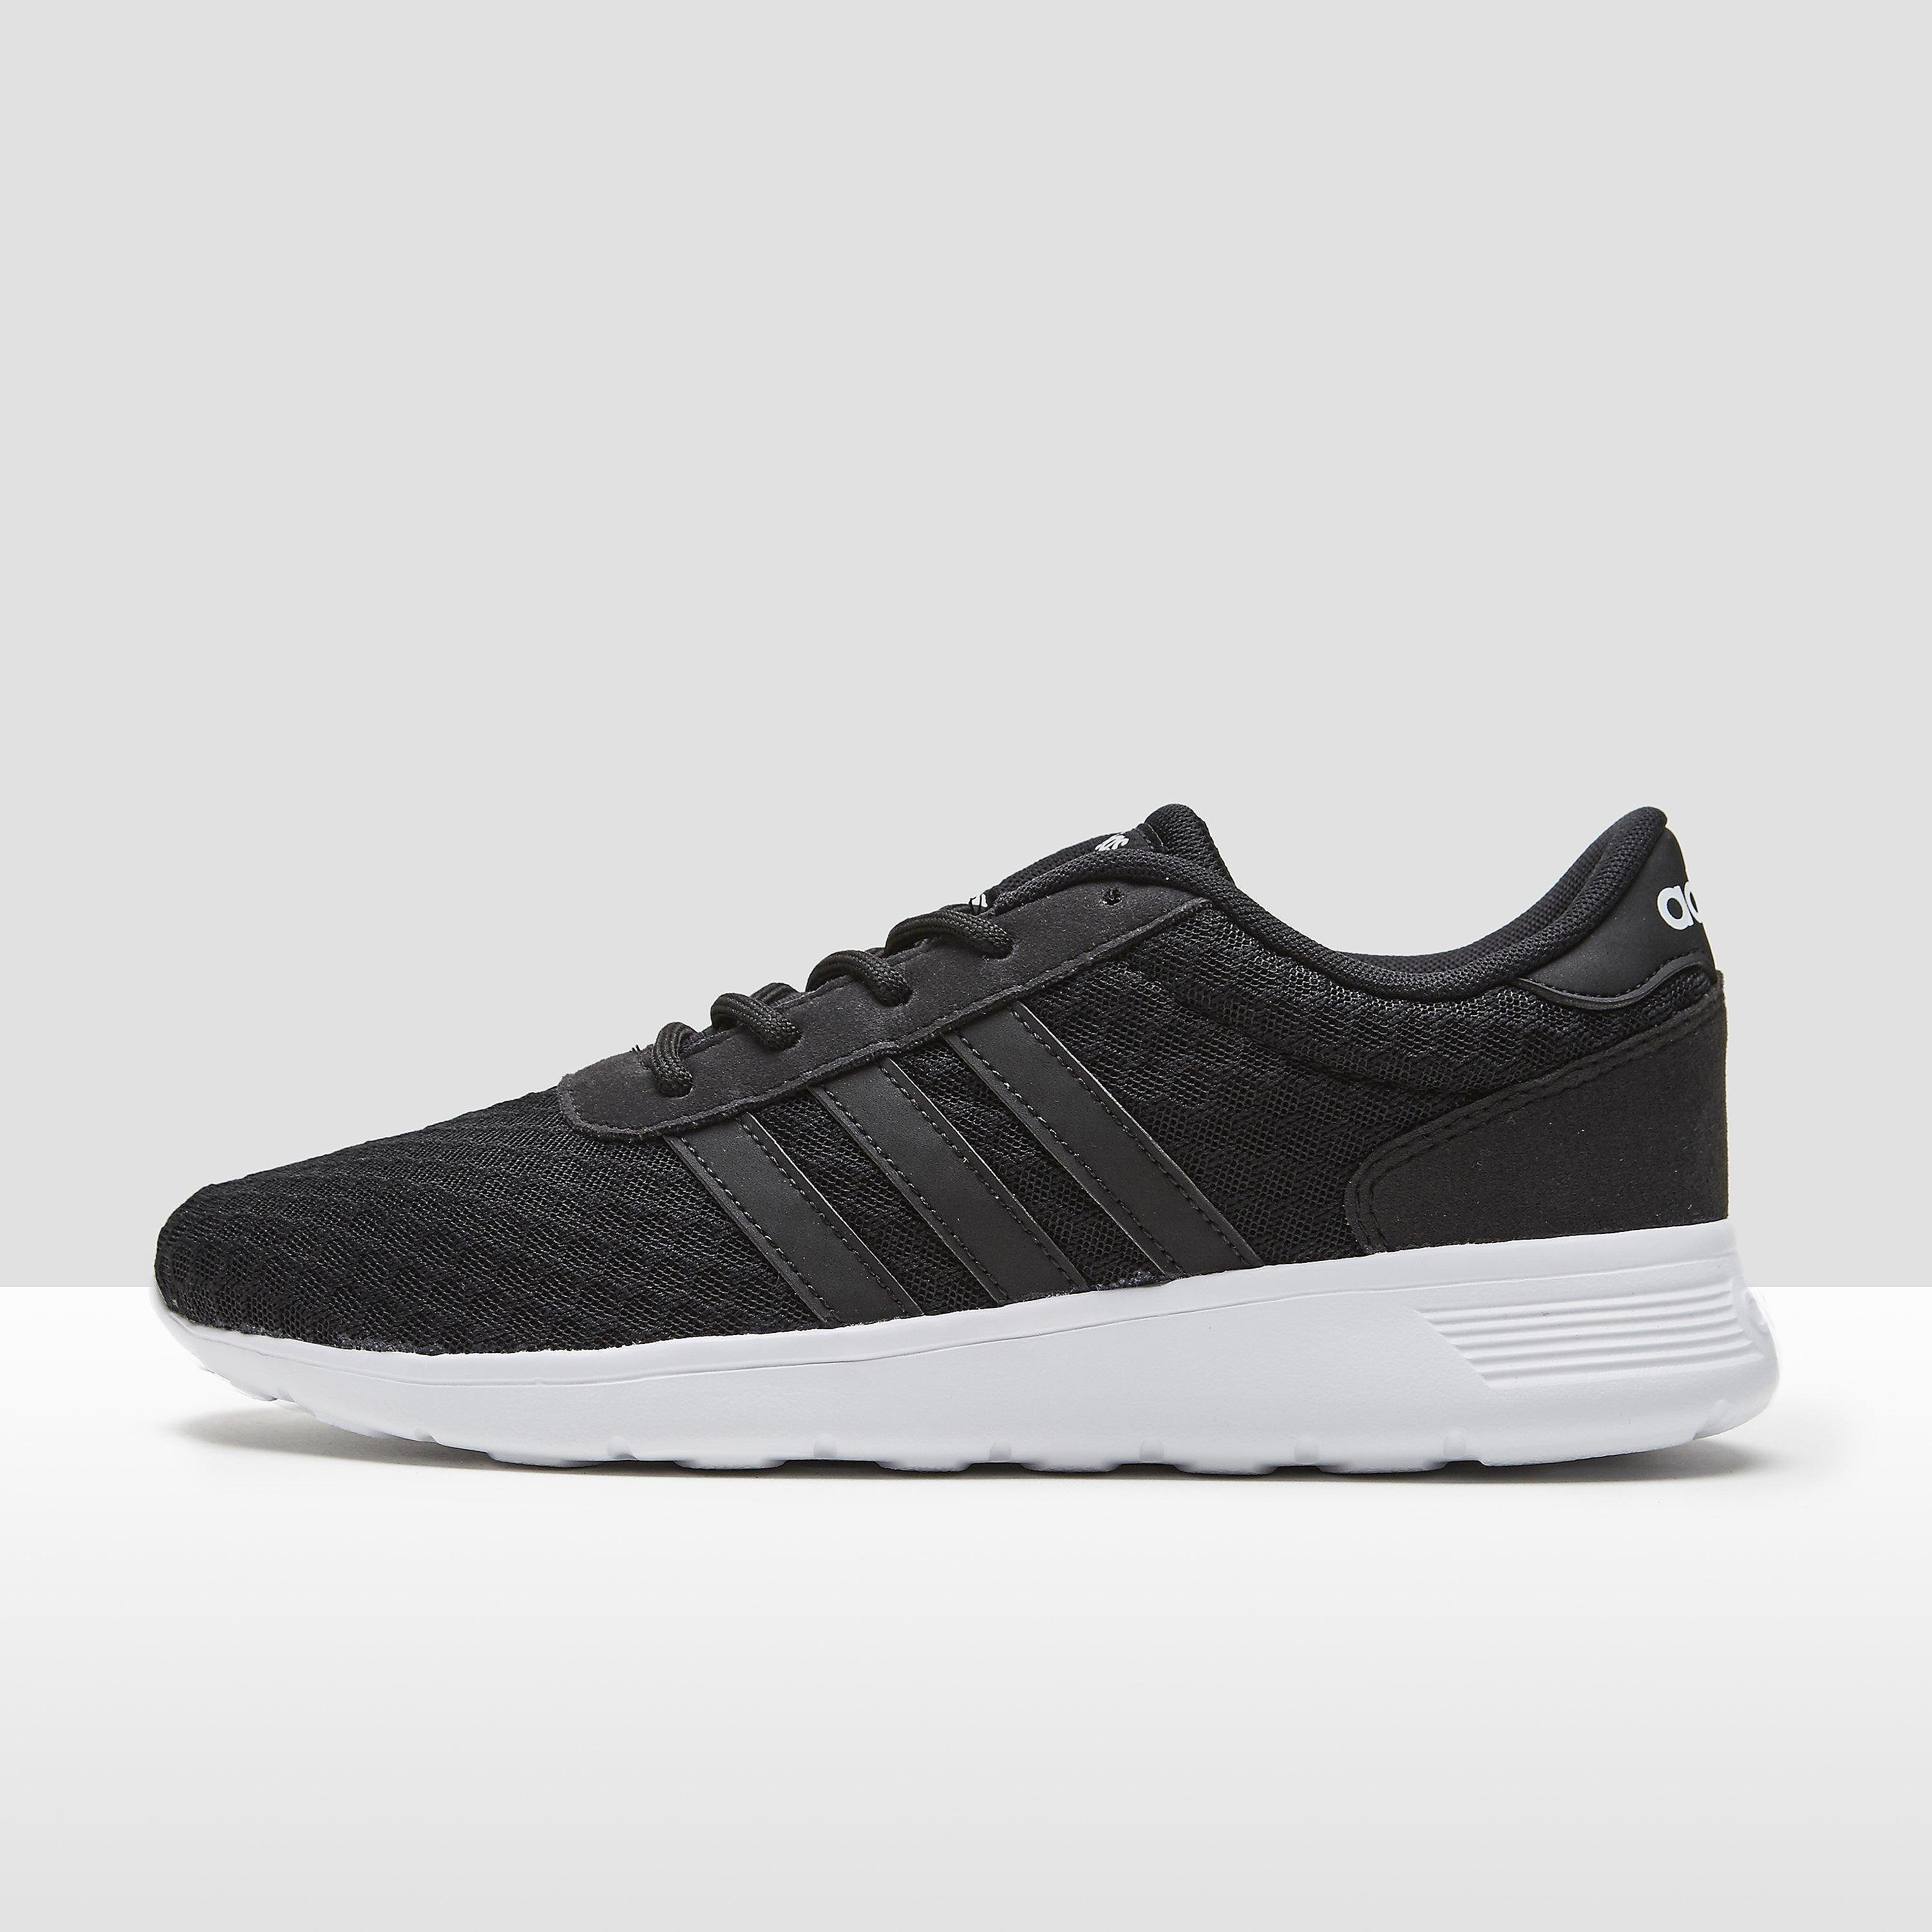 sneakers adidas Adidas lite racer w aw4960